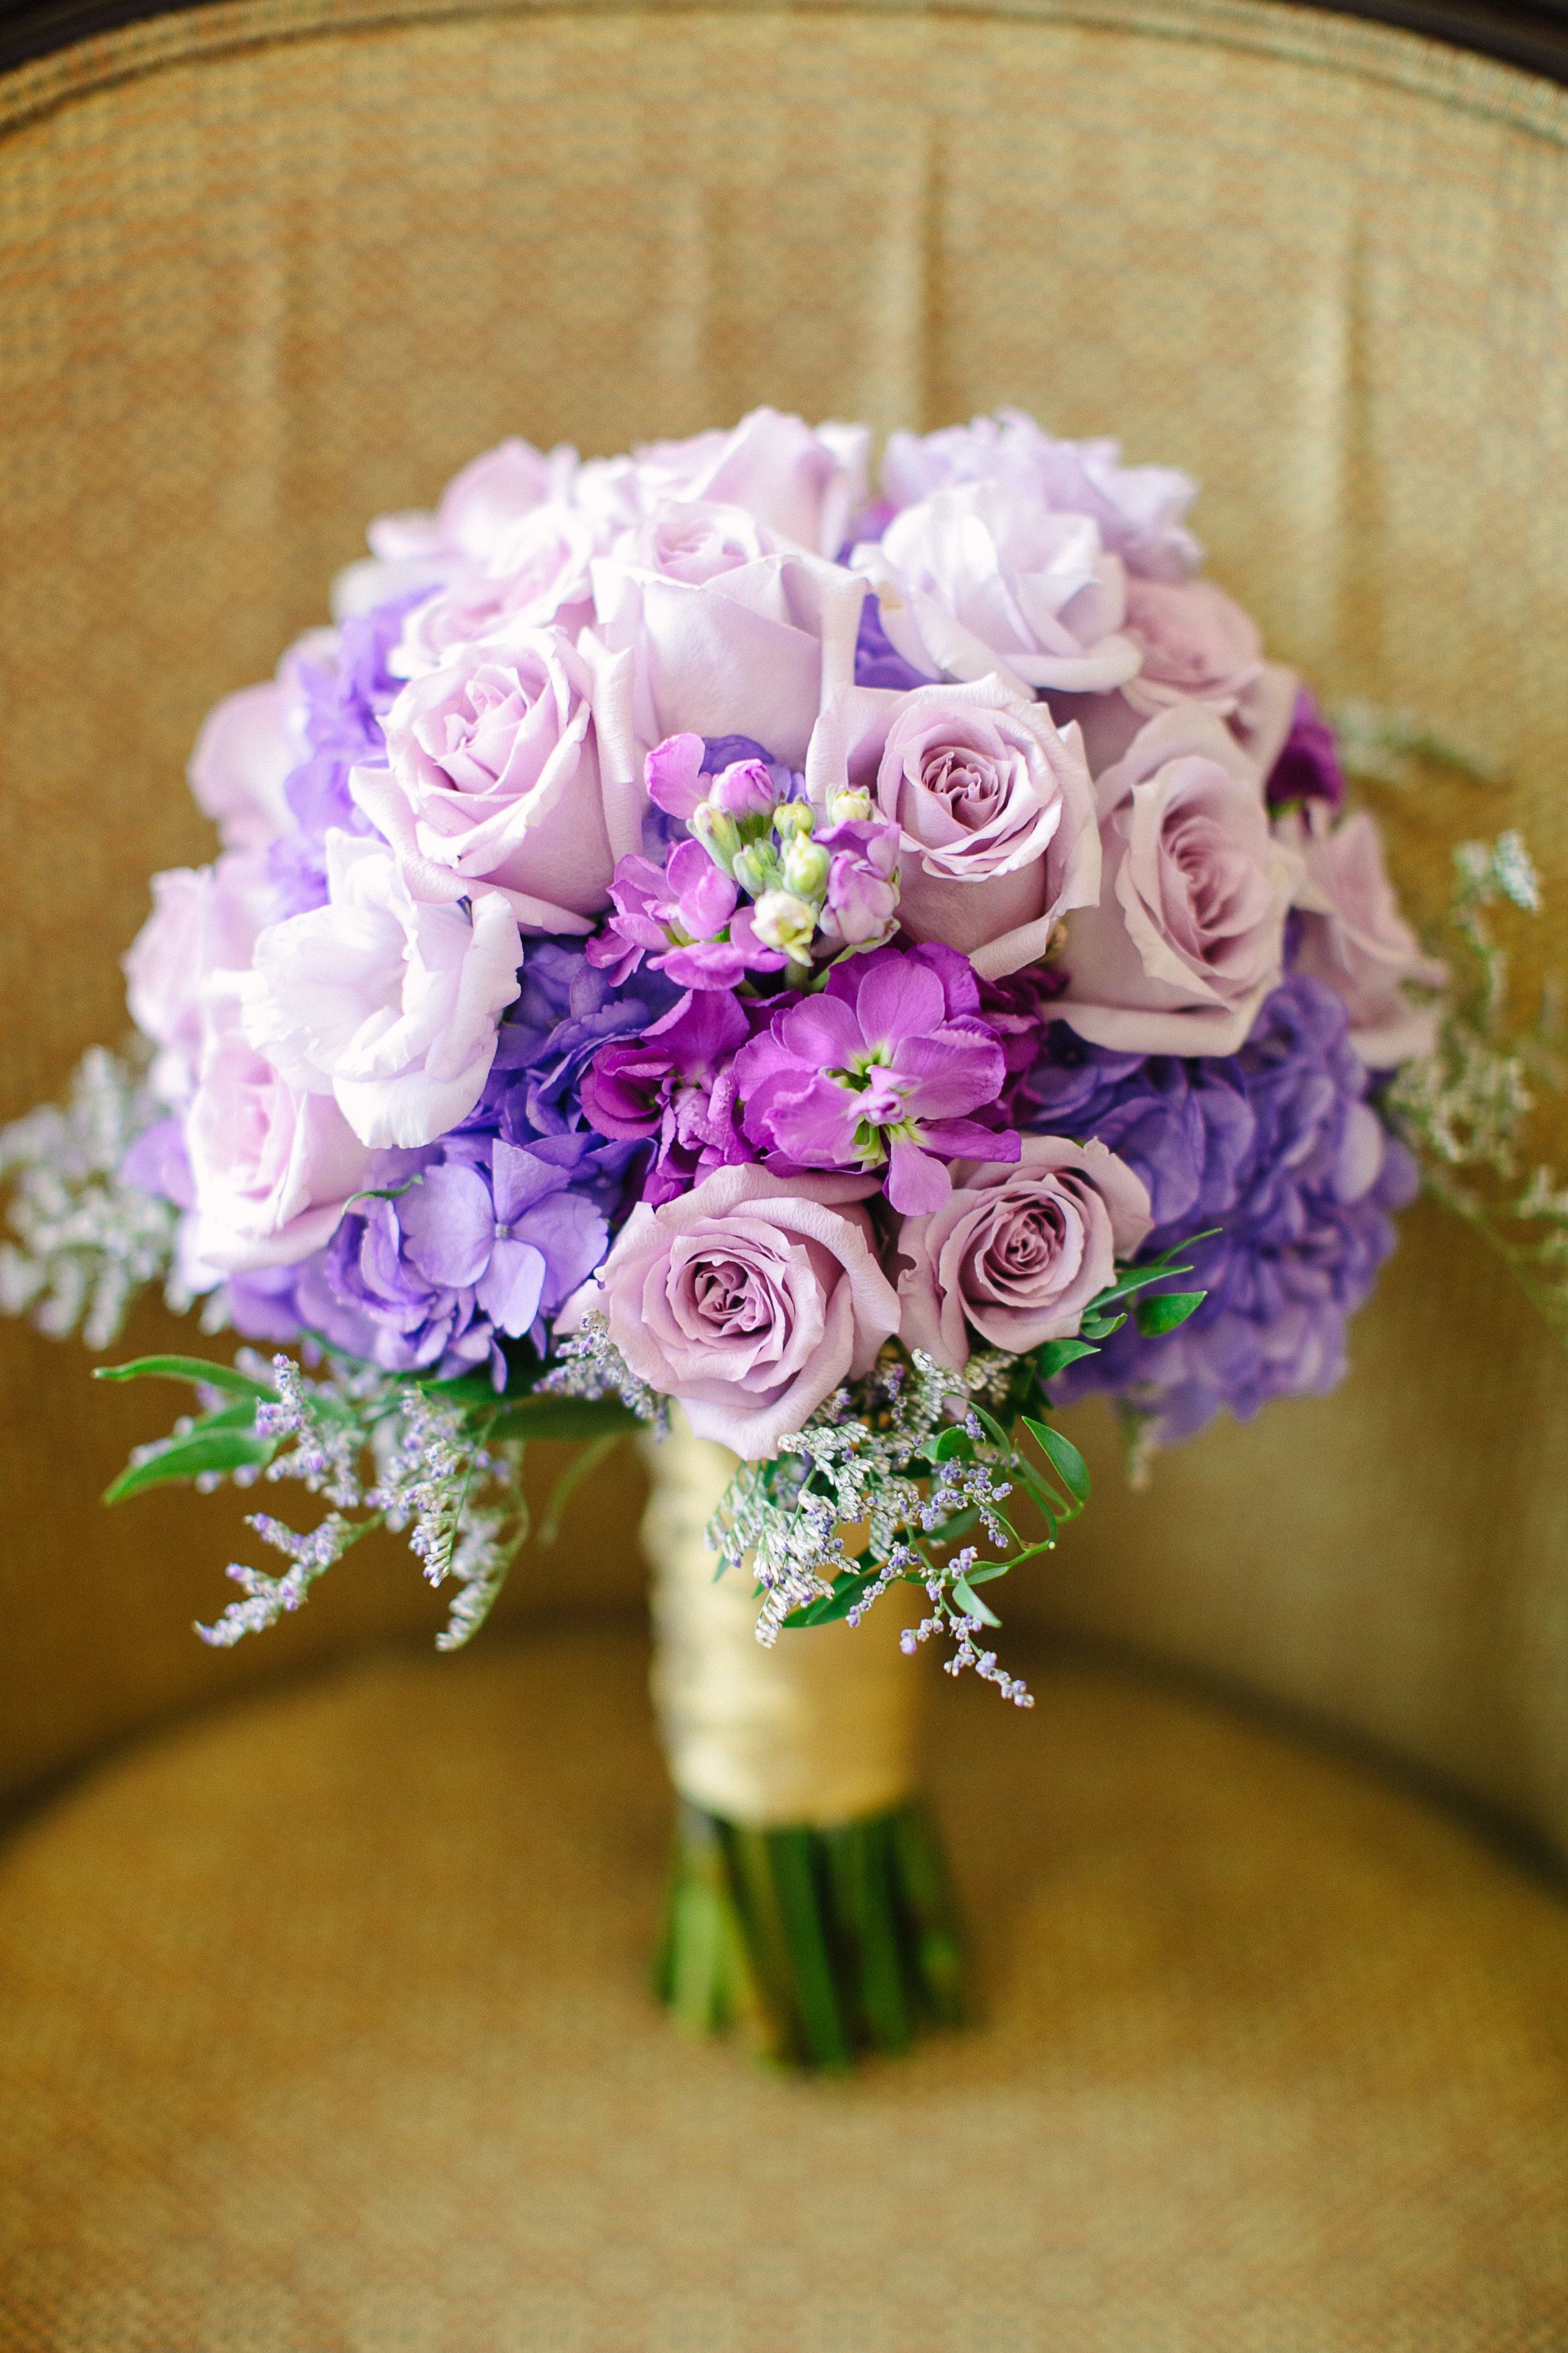 Lisianthus Roses Stock And Hydrangea With Caspia For A Lovely Bridal Bouquet Designed By Lana With Wedding Flowers Summer Bridal Party Flowers Bridal Bouquet